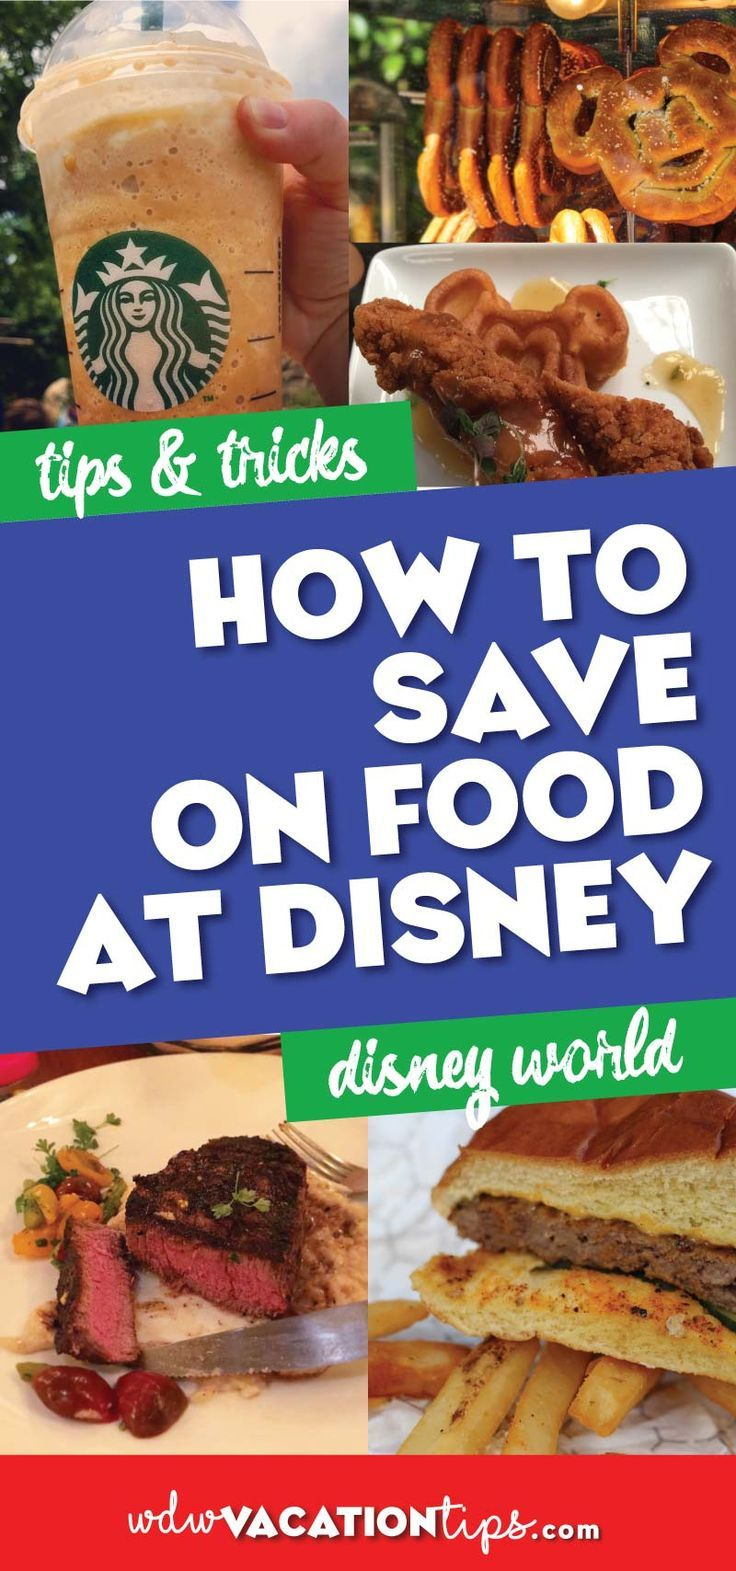 With ever increasing pricing on food at Disney, it's good to know a few tips and tricks that will save you some cash so you can bring home all those souvenirs you wanted. Here are our top money-saving tips for eating at Disney. #disneysnacks #disneydining #disneyfood #saveatdisneyworld